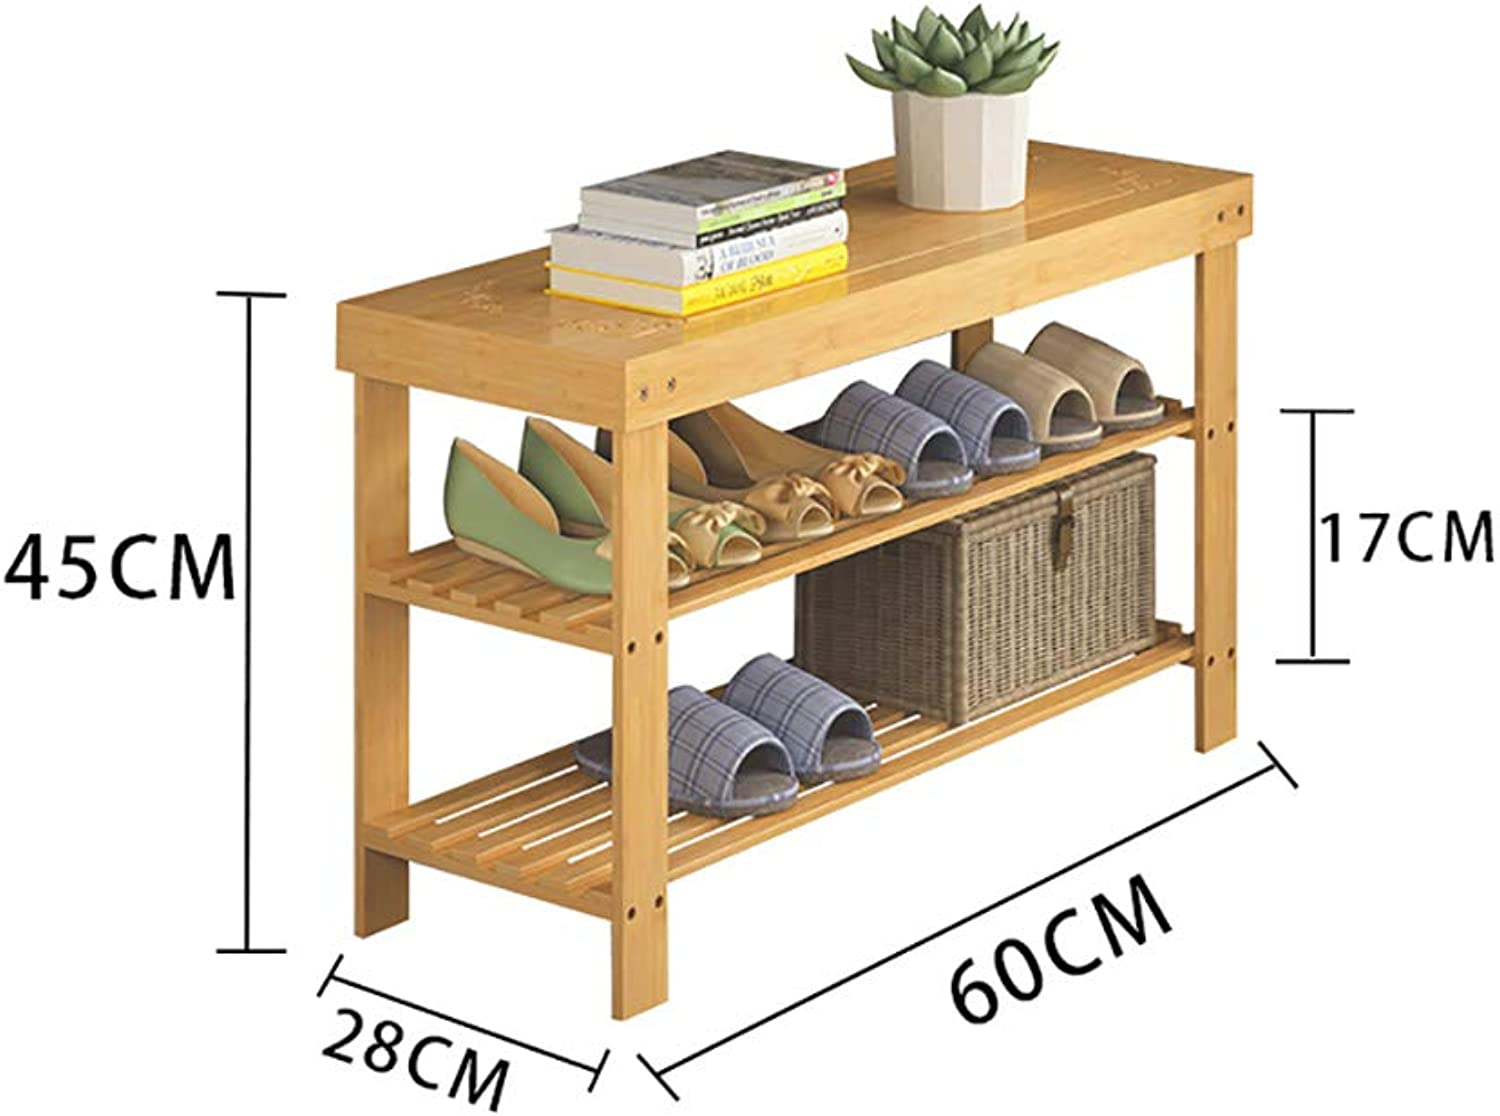 shoes Bench Organizing Rack Bamboo shoes Shelf Simple Multi-Layer dustproof Multi-Purpose shoes Change shoes Bench Economy Home Dormitory Shelves (Size   60  28  45cm)